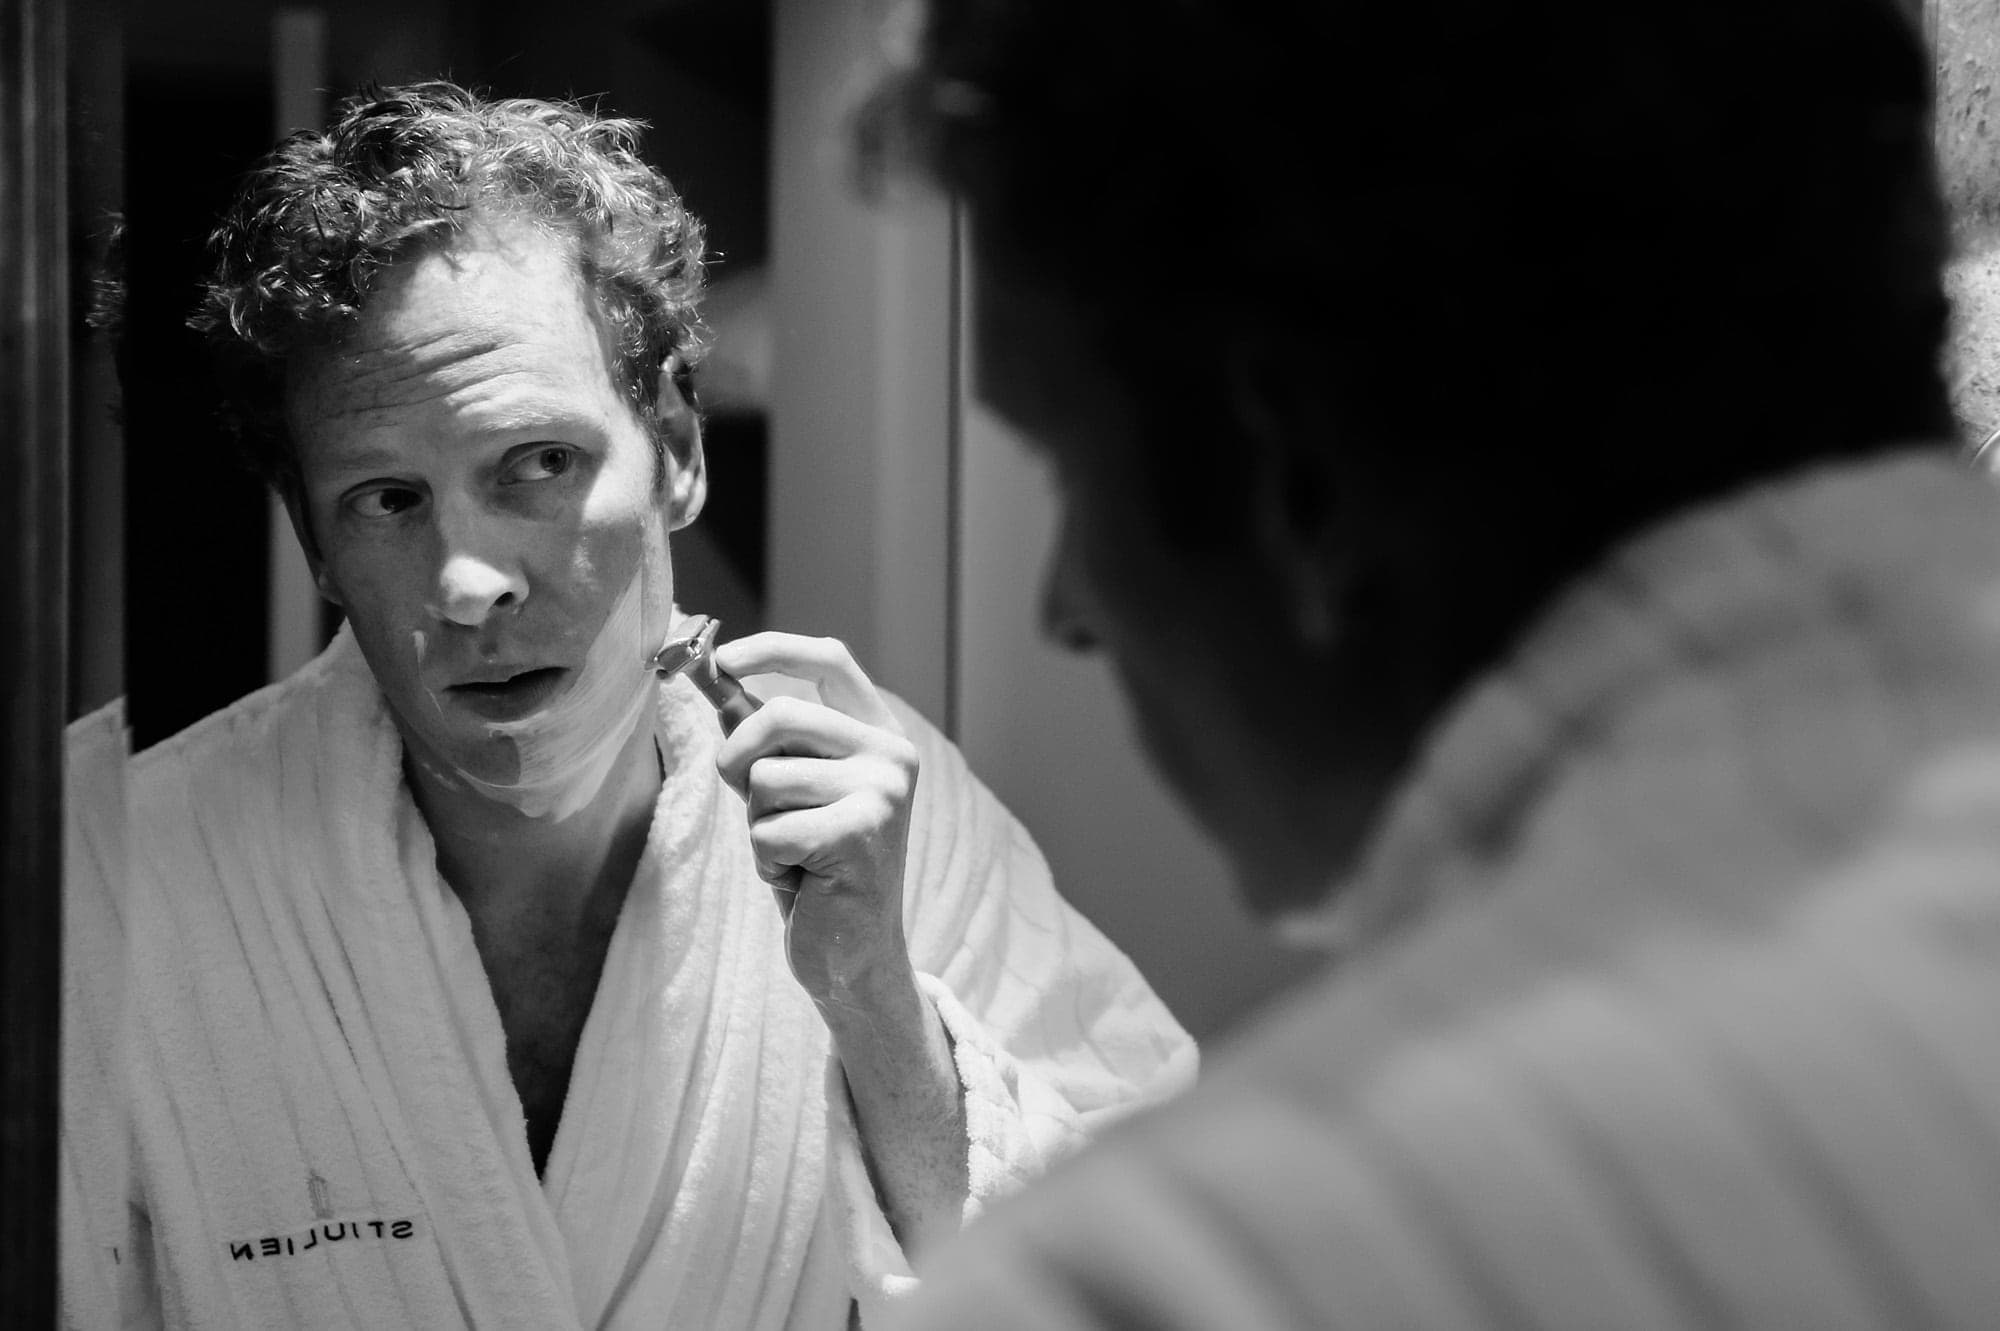 Groom shaves at the St. Julien hotel before his nuptials